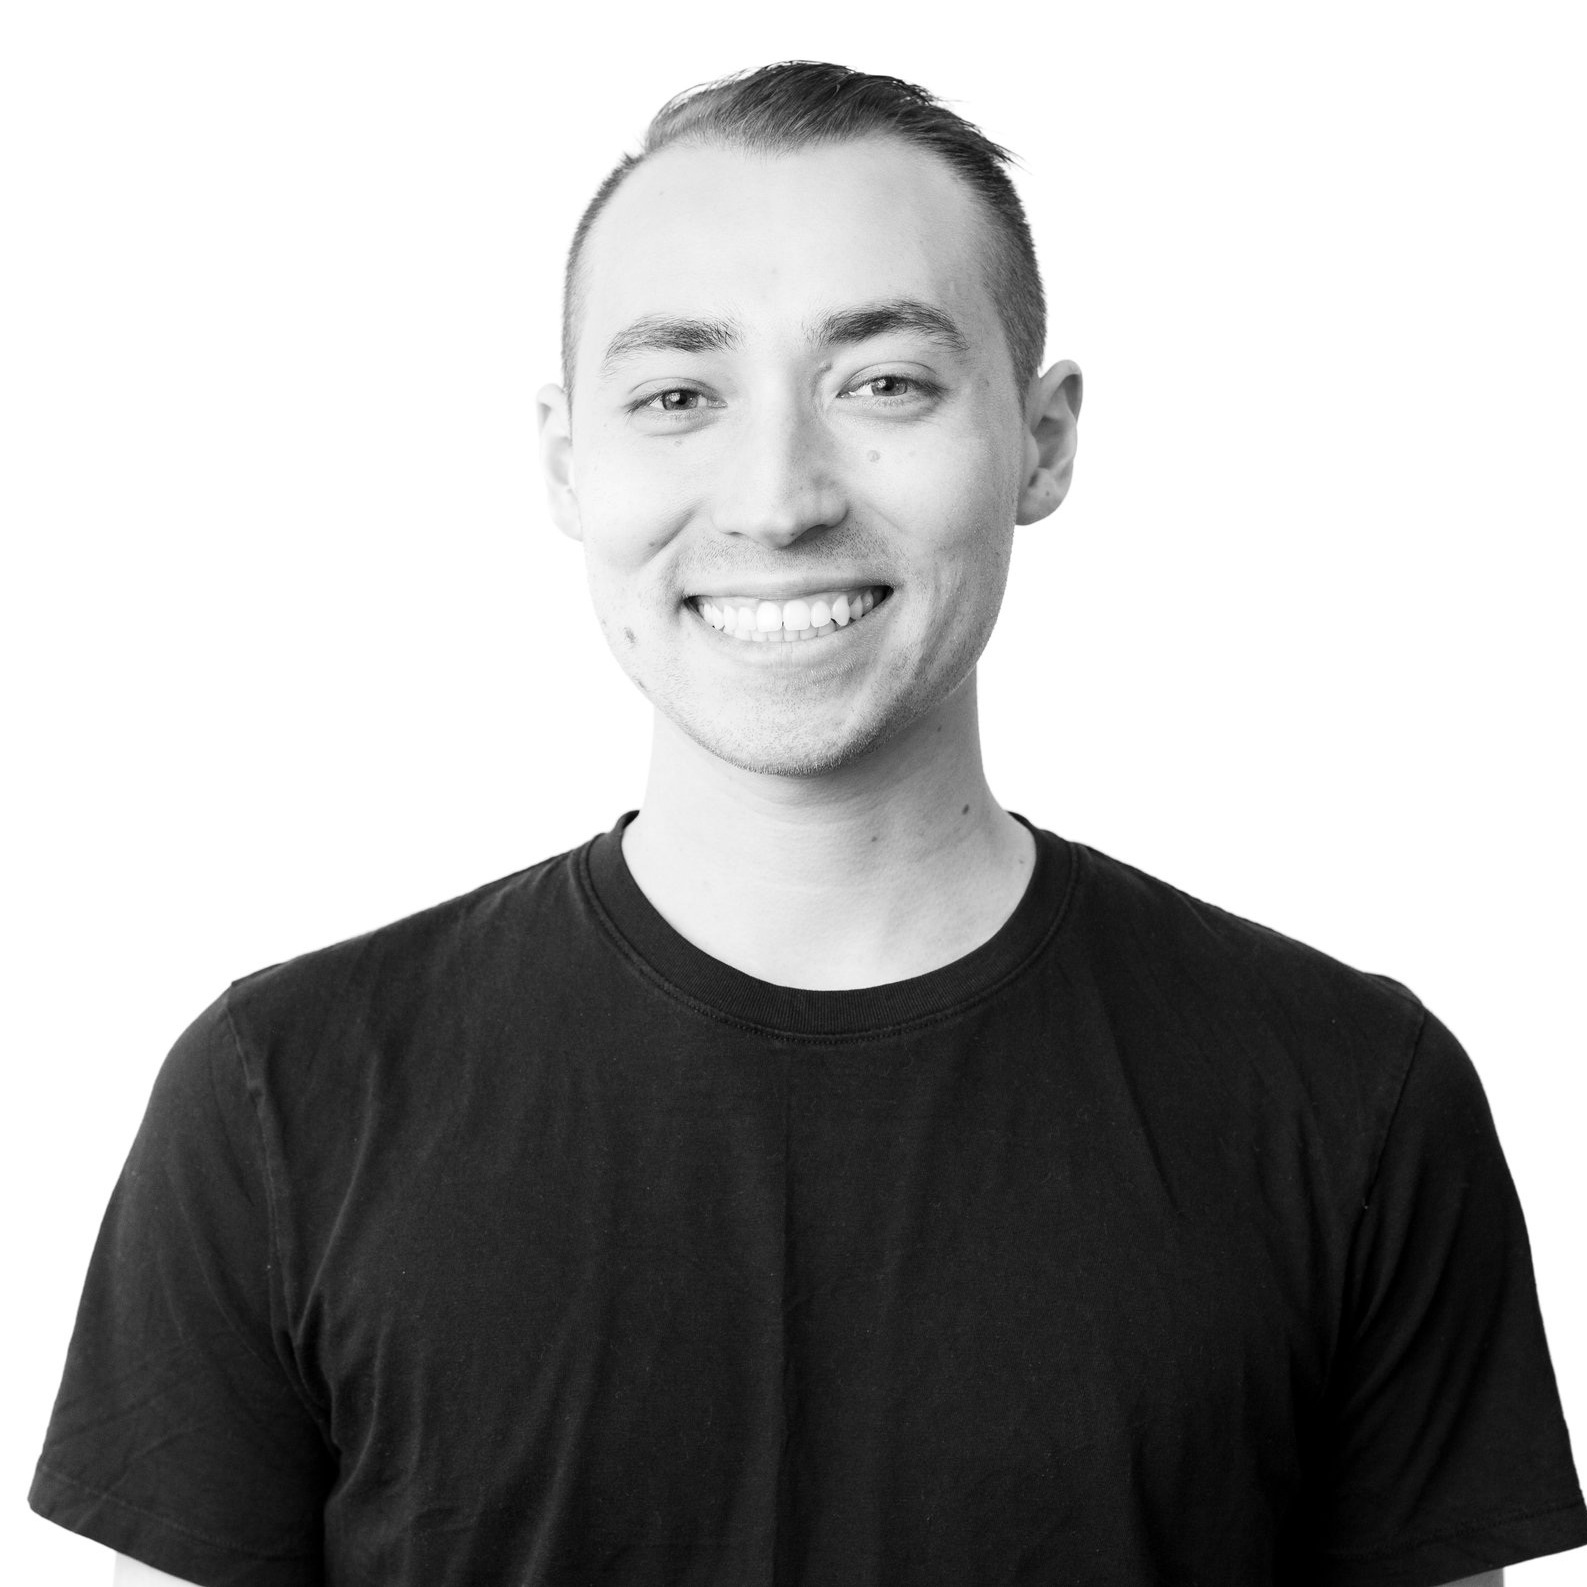 Ethan Wessel  Solidity Engineer  Ethan brings his knowledge and experience from Snapchat where he helped build out their automated testing and infrastructure. Ethan holds a B.S. in Computer Science from the University of California, Irvine.   LinkedIn